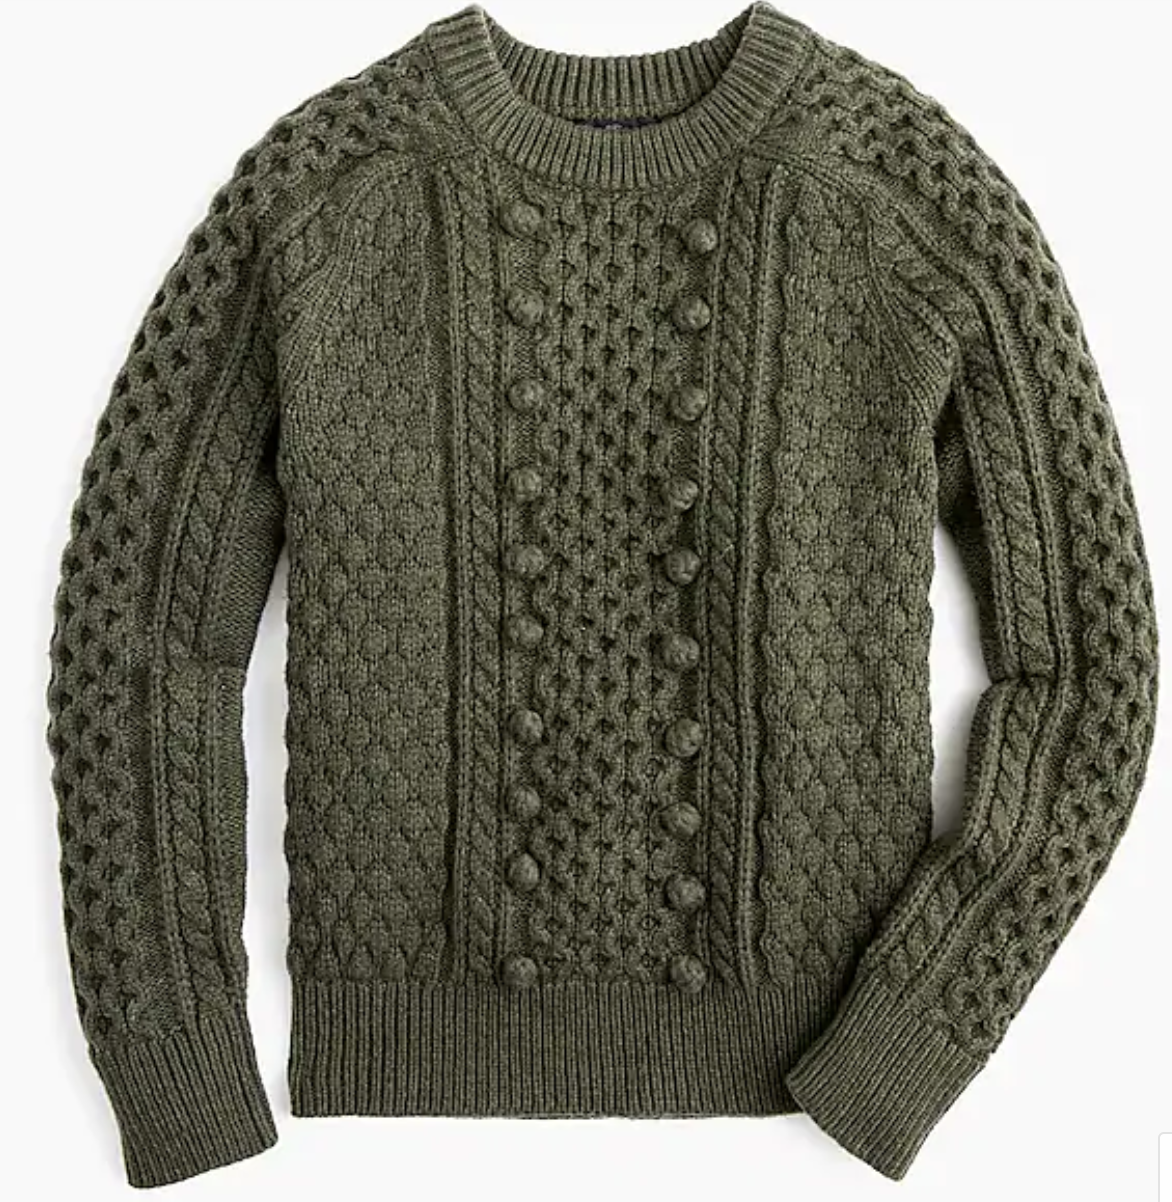 staple color for your wardrobe through winter… and timeless add for cool seasons to come. my similar style poppy colored sweater got endless wear last season, and my sister and I showed up in the same outfit on multiple occasions… LOL.  product link